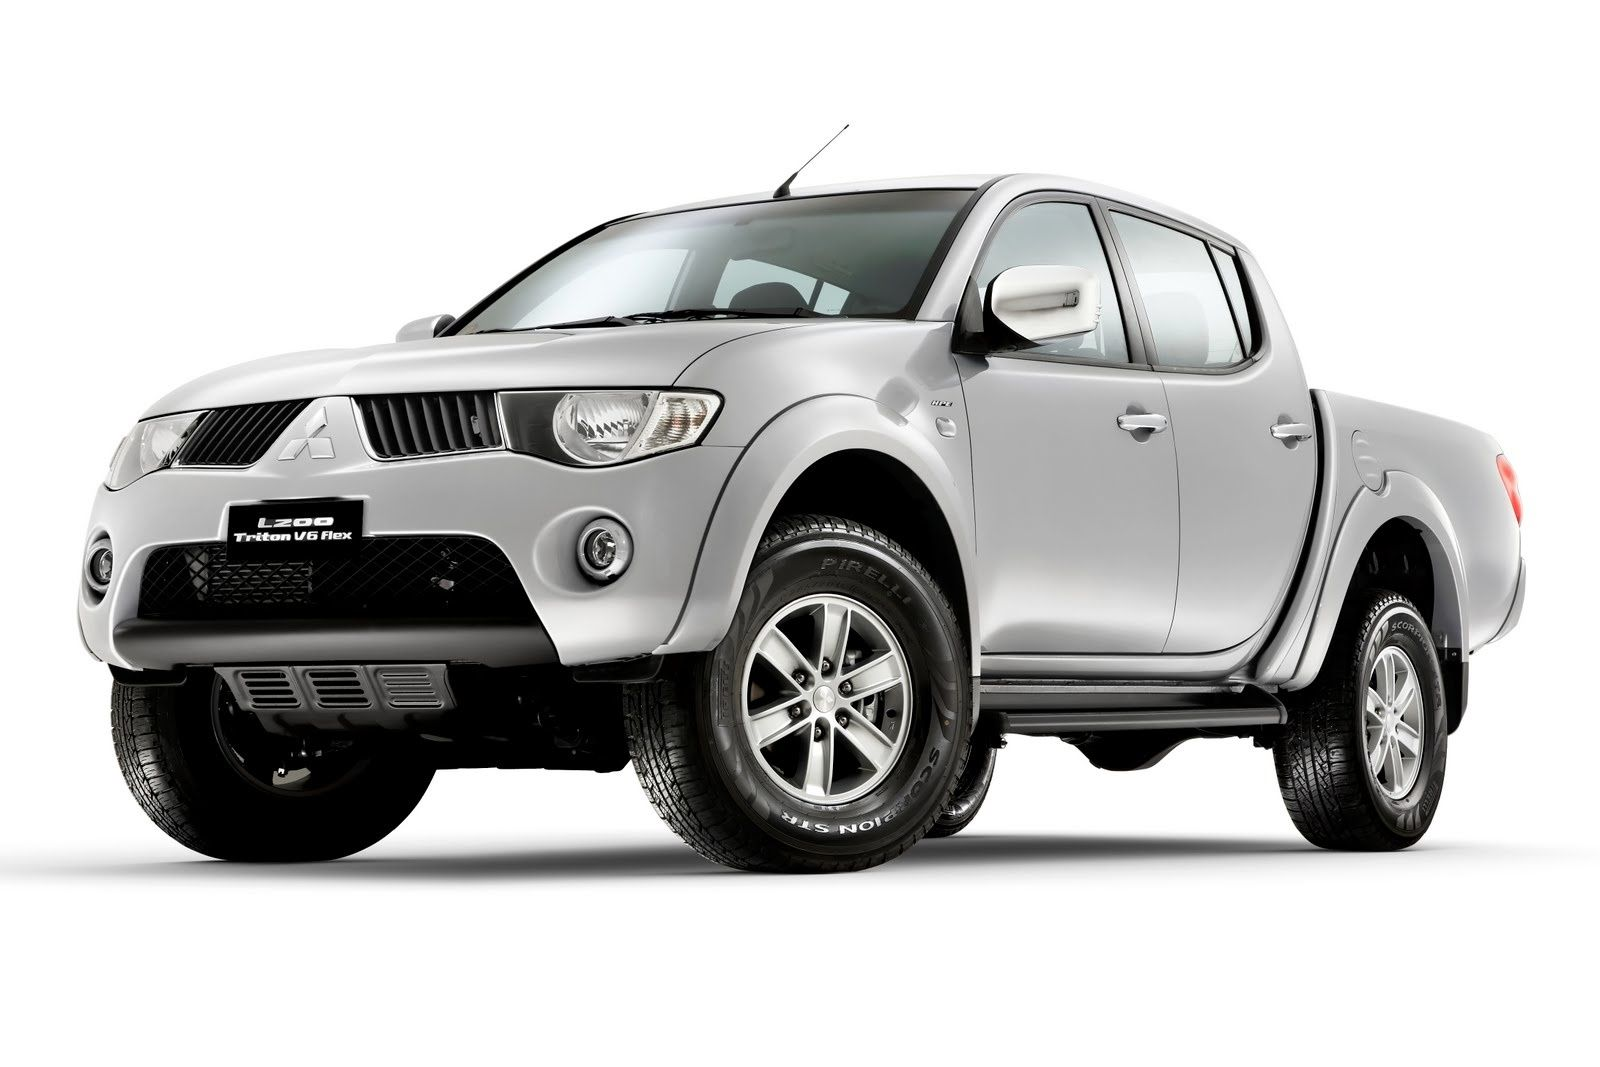 2015 Mitsubishi Triton L200 Service Manual CD, 2015, ISO+PDFThis  HIGH-QUALITY